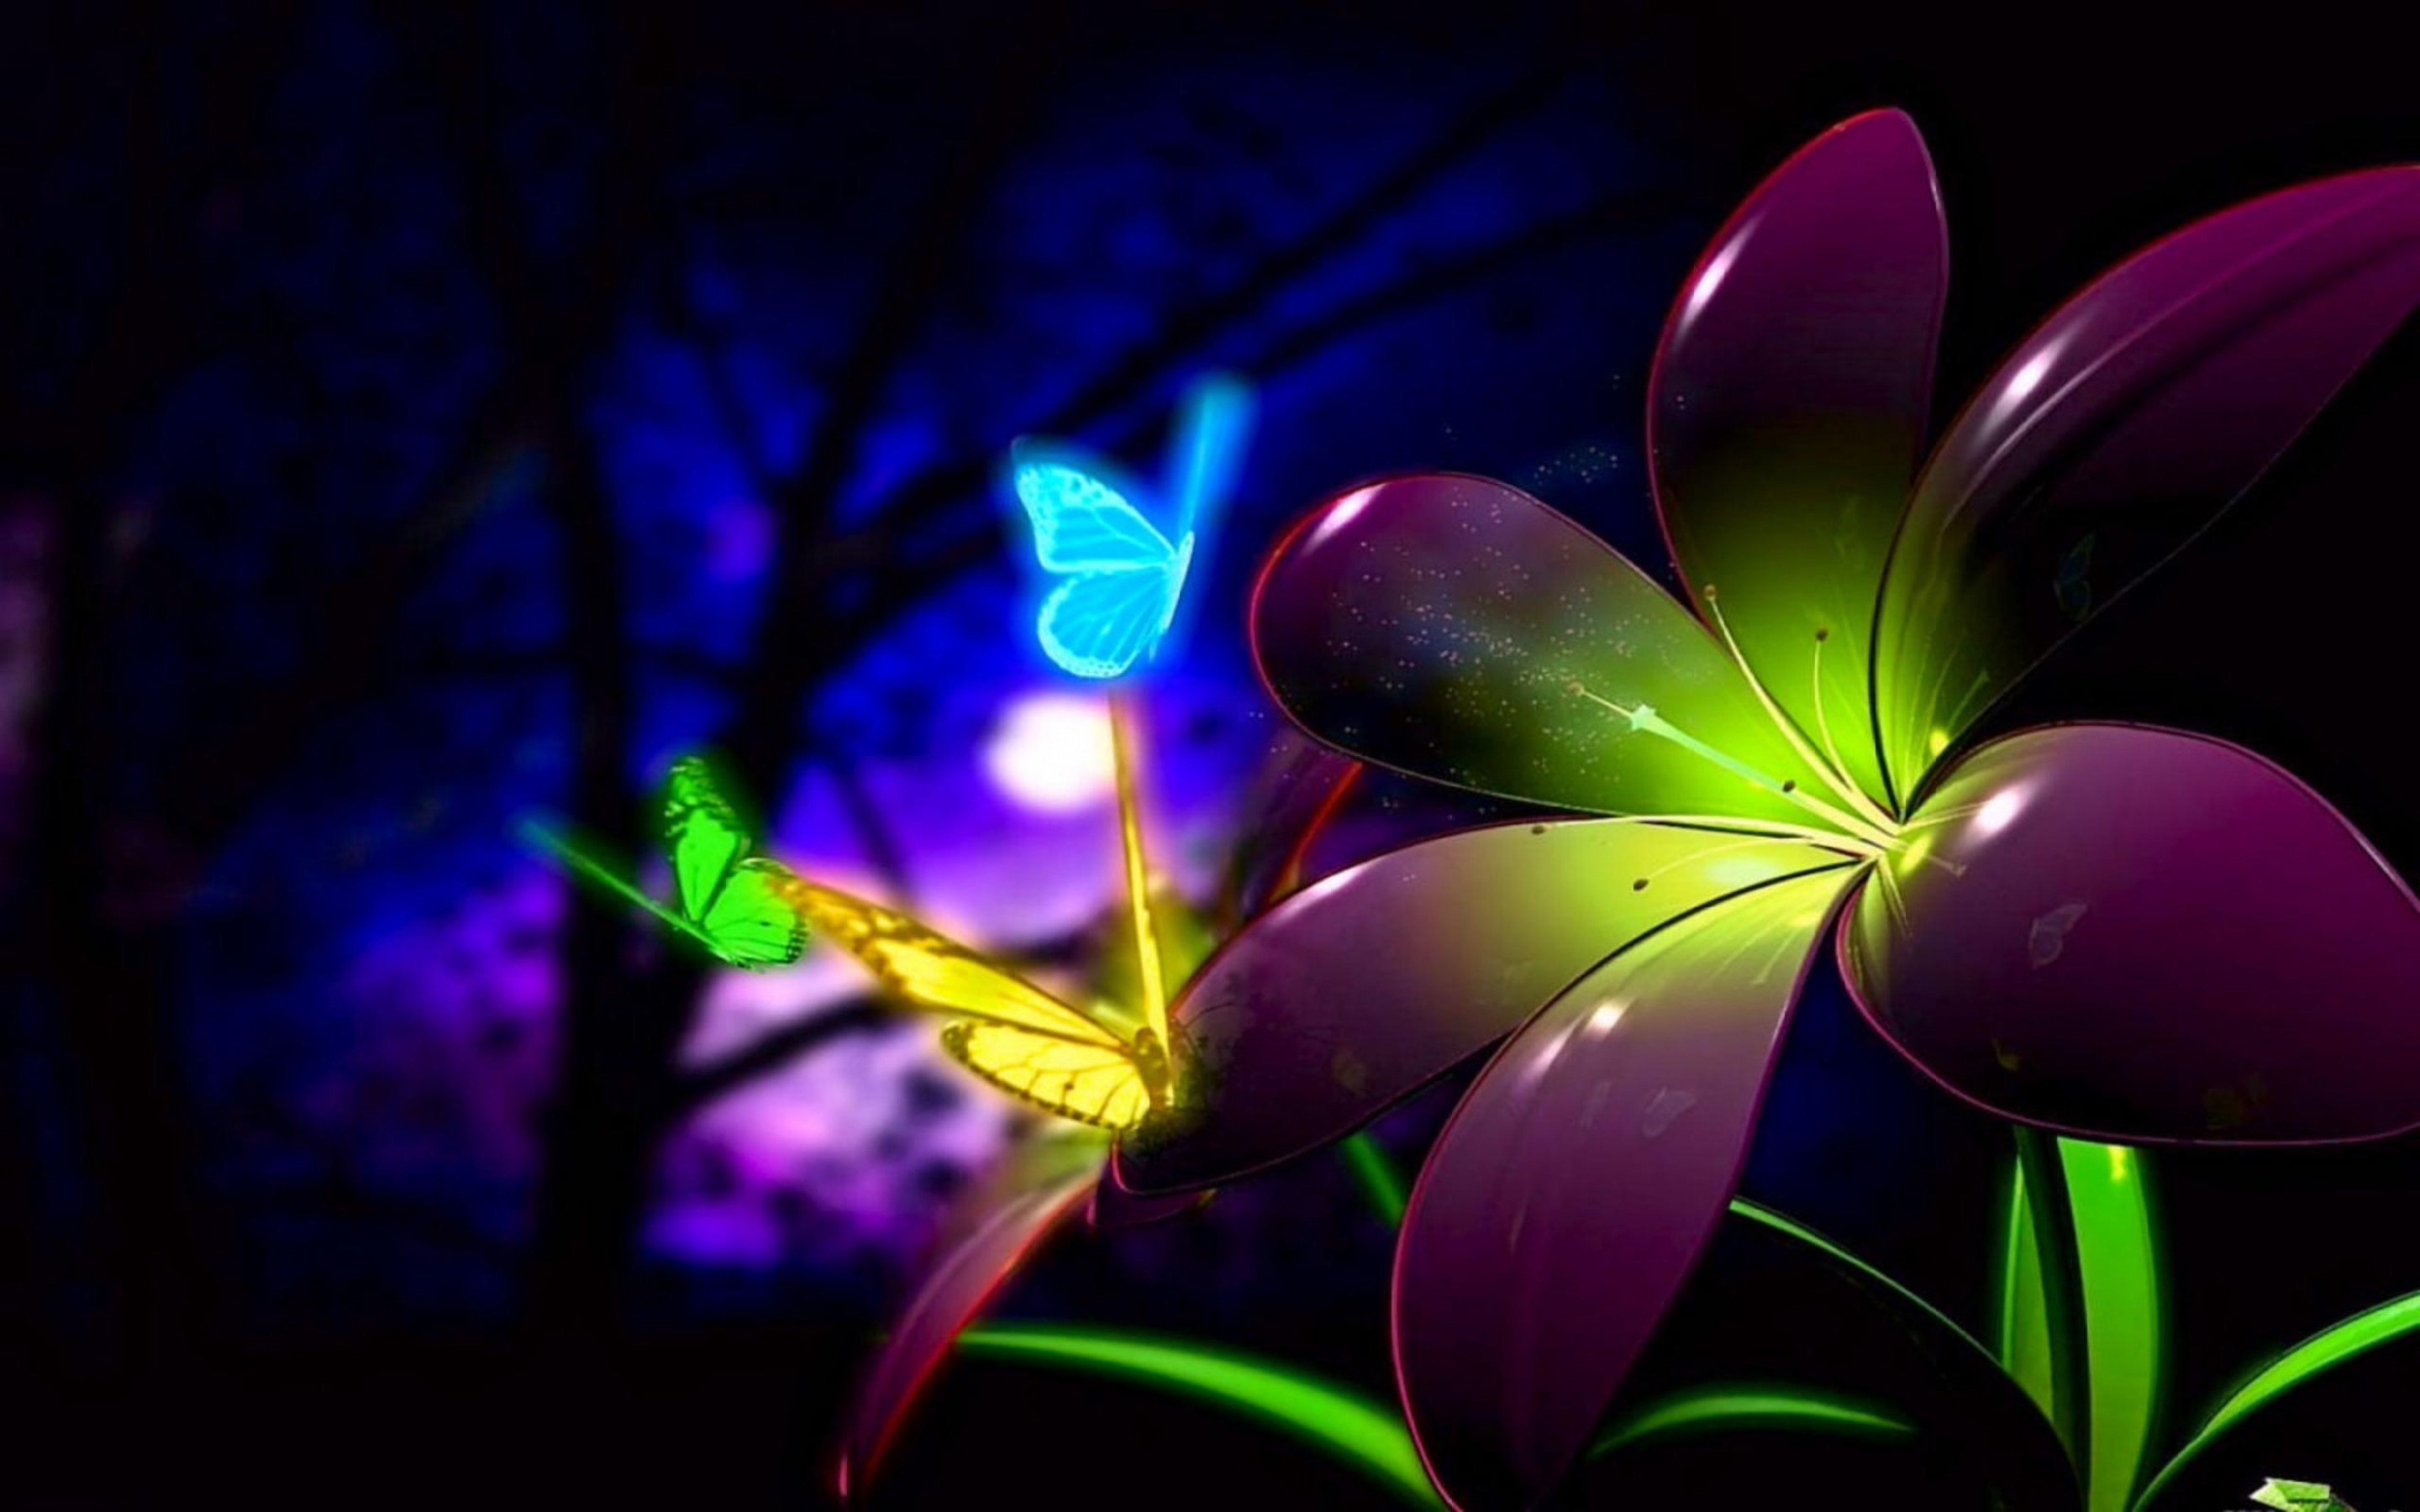 Nice Animated 3d Flower And Butterfly Wallpaper Desktop Desktop 2880x1800